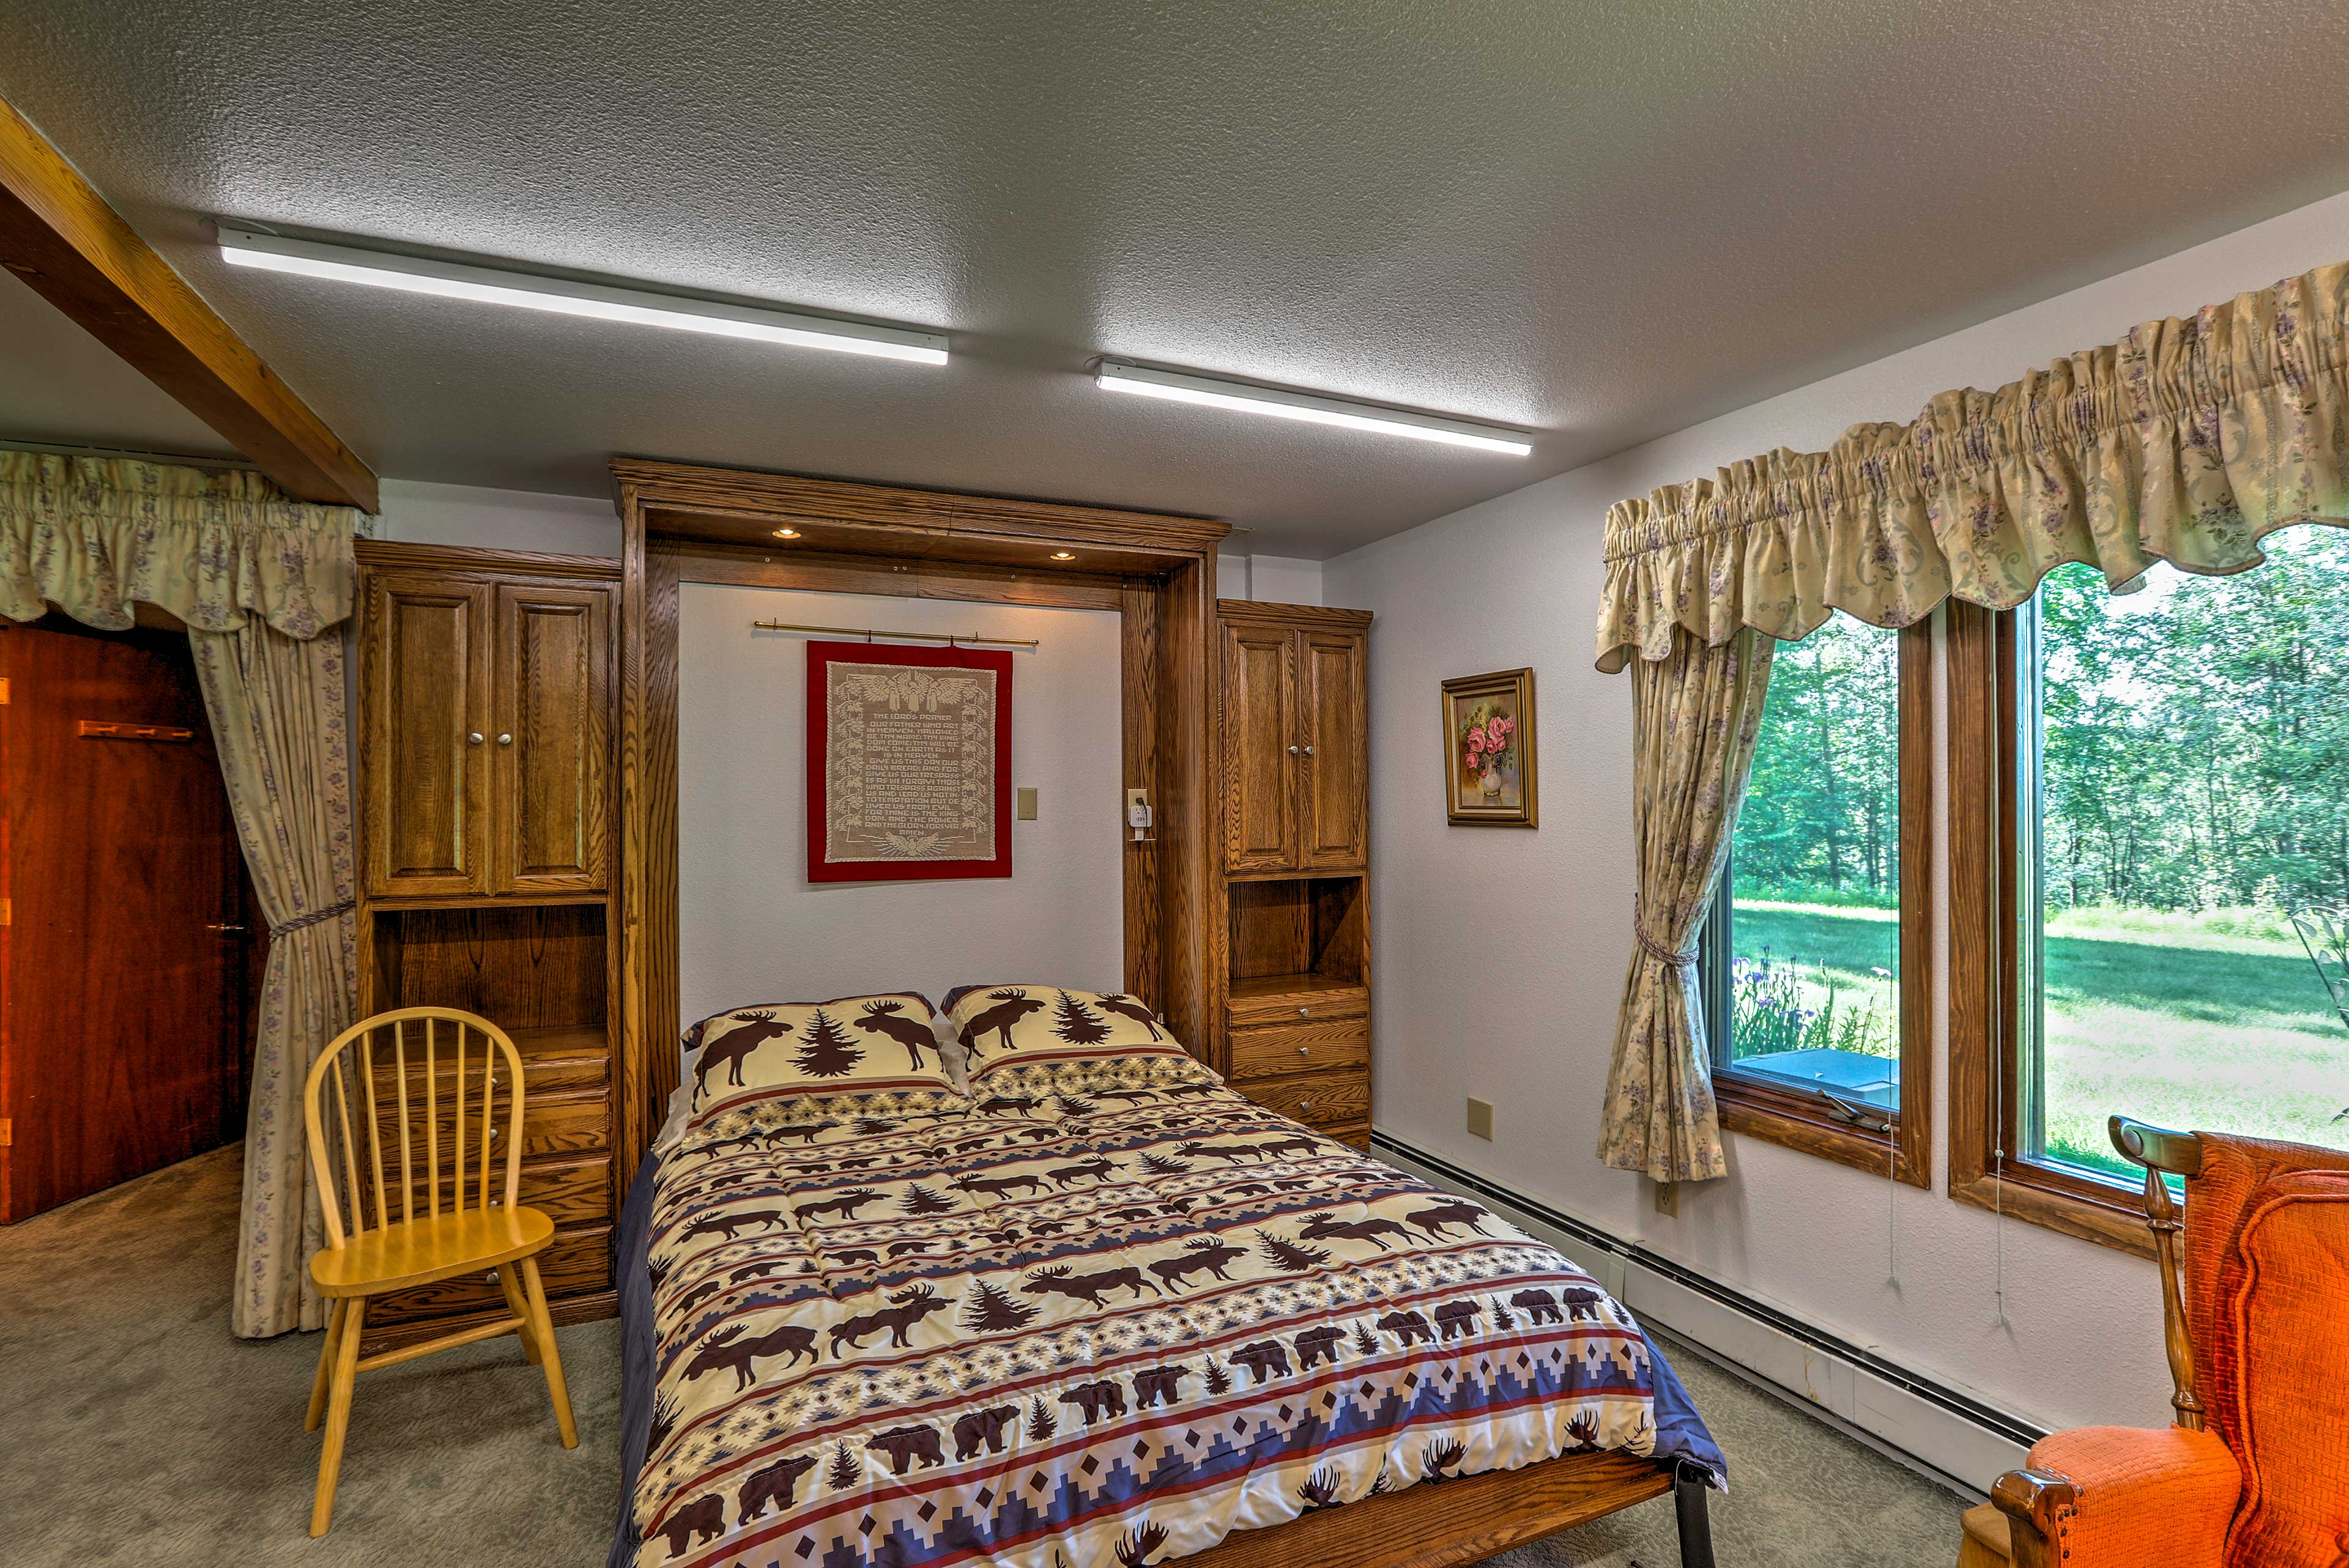 Cover yourself in quilts as you snuggle up on the full-sized Murphy bed.